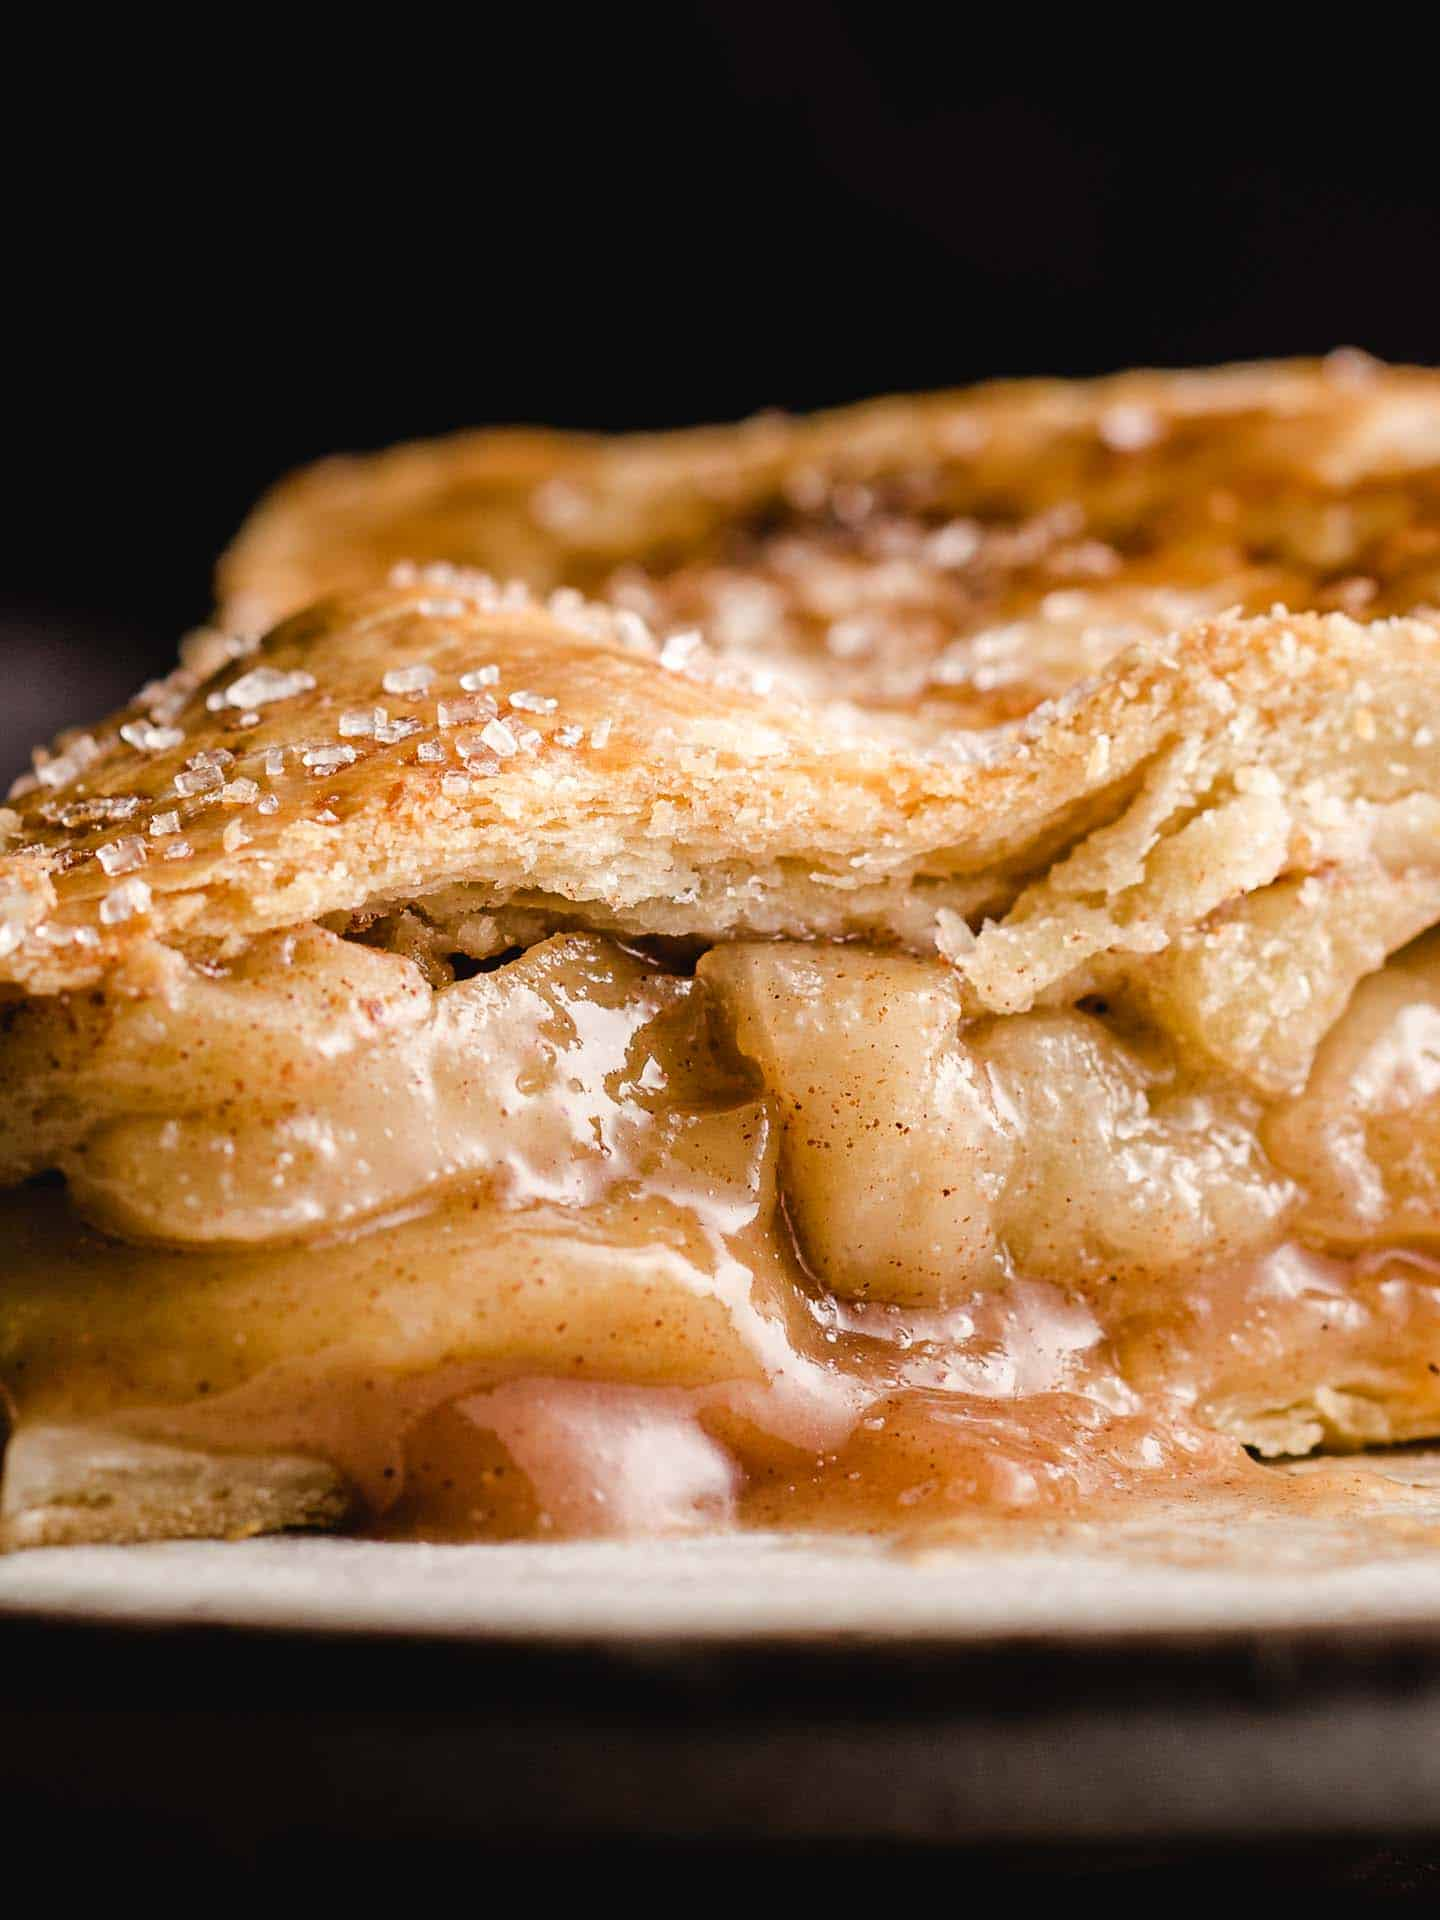 A closeup picture of a slice of apple pie.